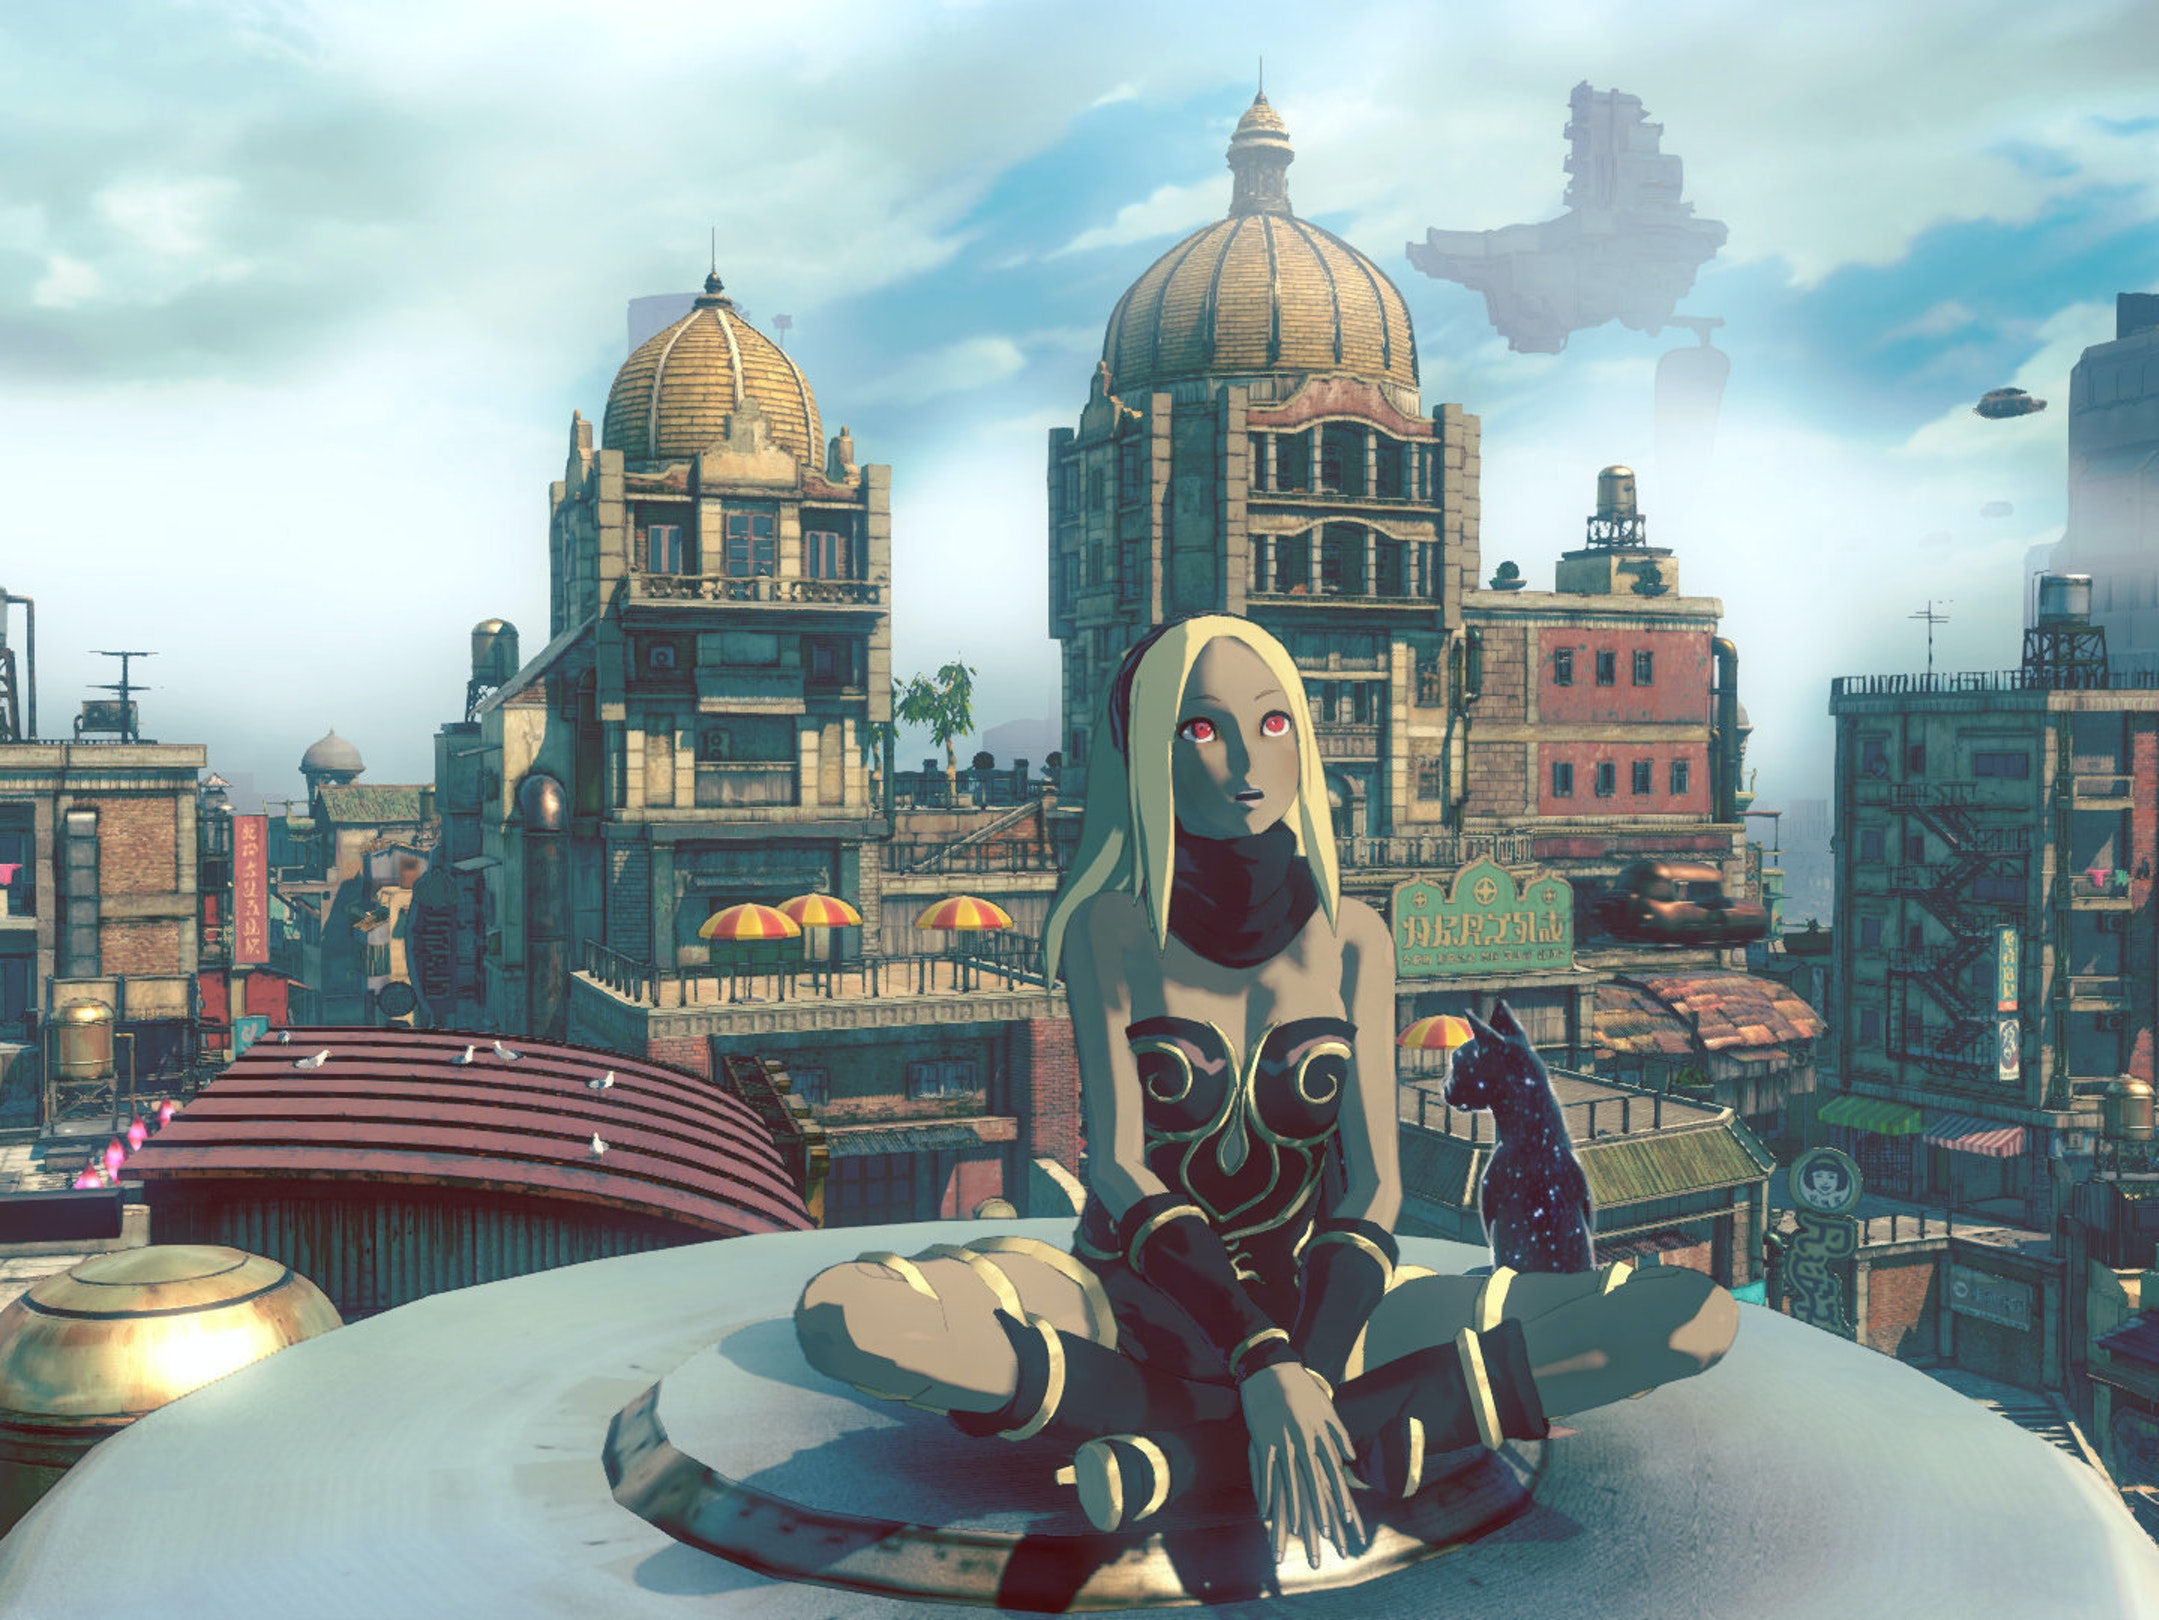 The Best Part of 'Gravity Rush' Is Its Captivating World